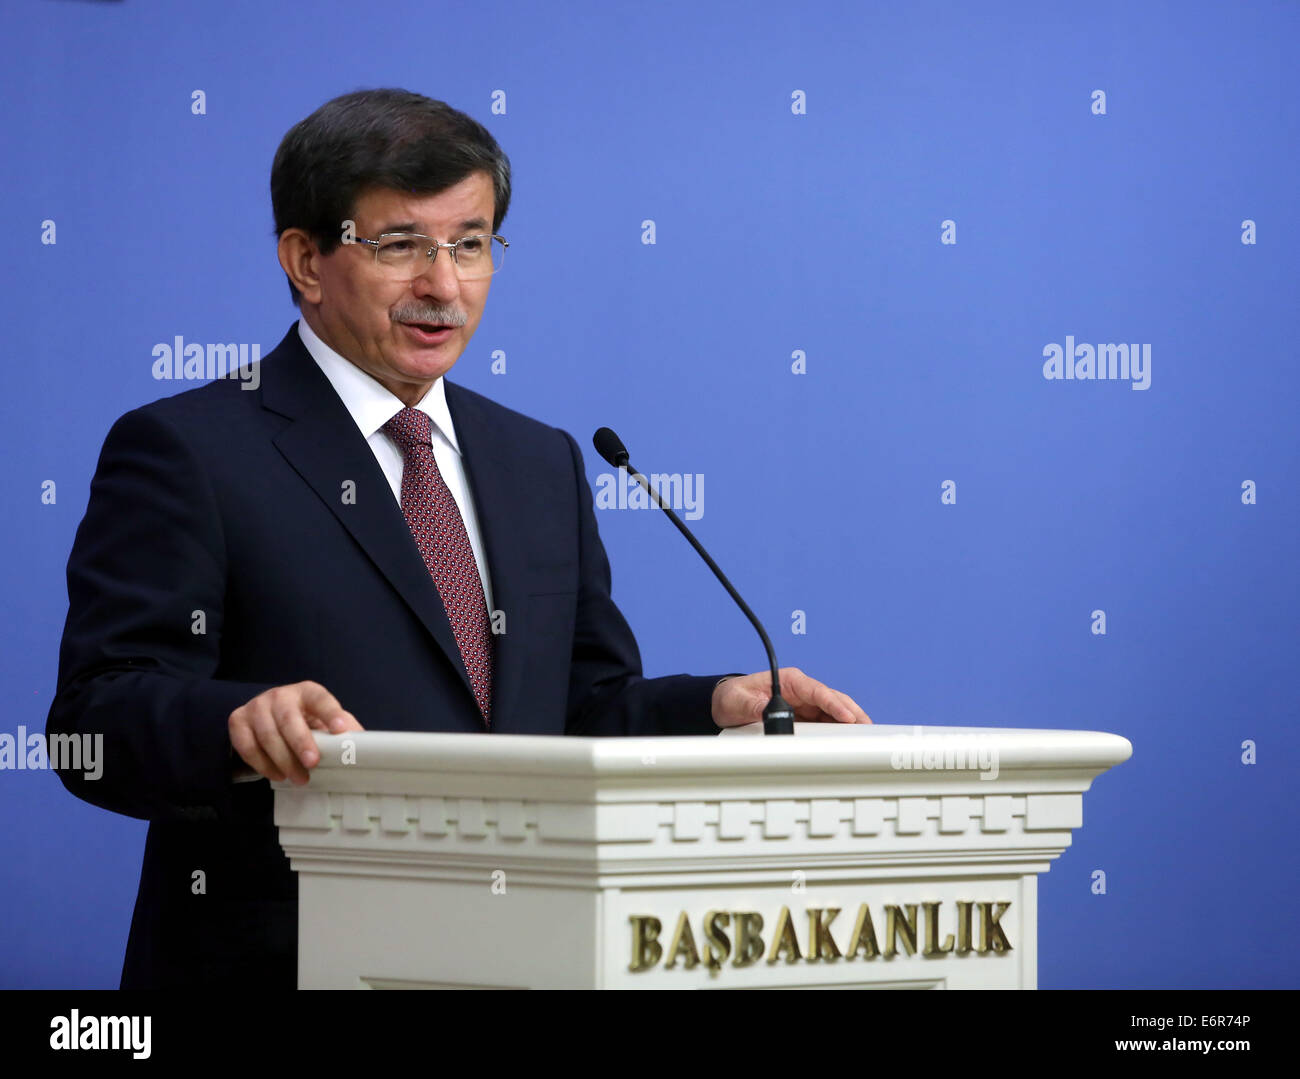 Ankara. 29th Aug, 2014. Turkish Prime Minister Ahmet Davutoglu speaks at a press conference in the Turkish capital - Stock Image